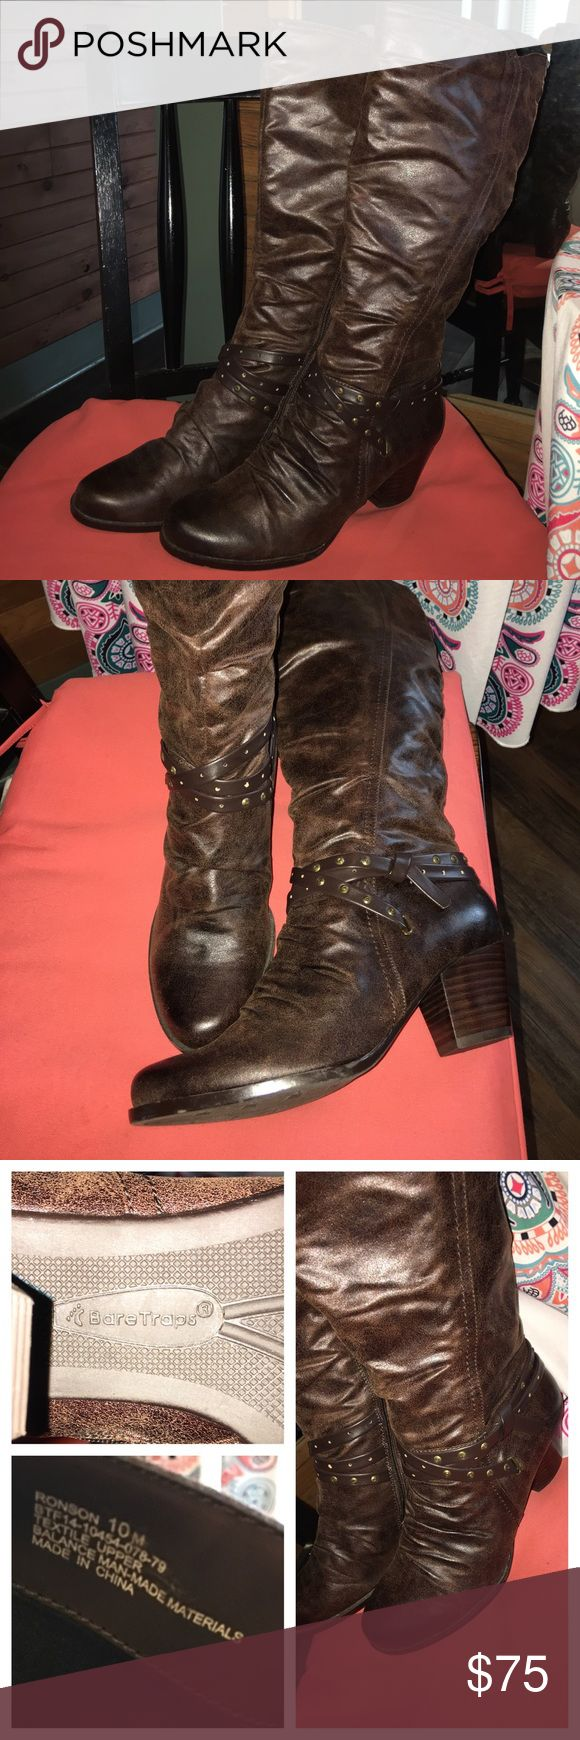 "👢Never Worn Sexy Brown Knee High BareTrap Boots👢 👢NWOT Sexy Brown Knee High BareTrap Boots👢Size 10...TRADE?? I paid $100 NEW for these and have only tried them on. I just can't wear them, im 5'10"" and have had foot surgery recently so no time soon will I be able to wear these. Thanks for looking. 😊 BearTraps Shoes Heeled Boots"